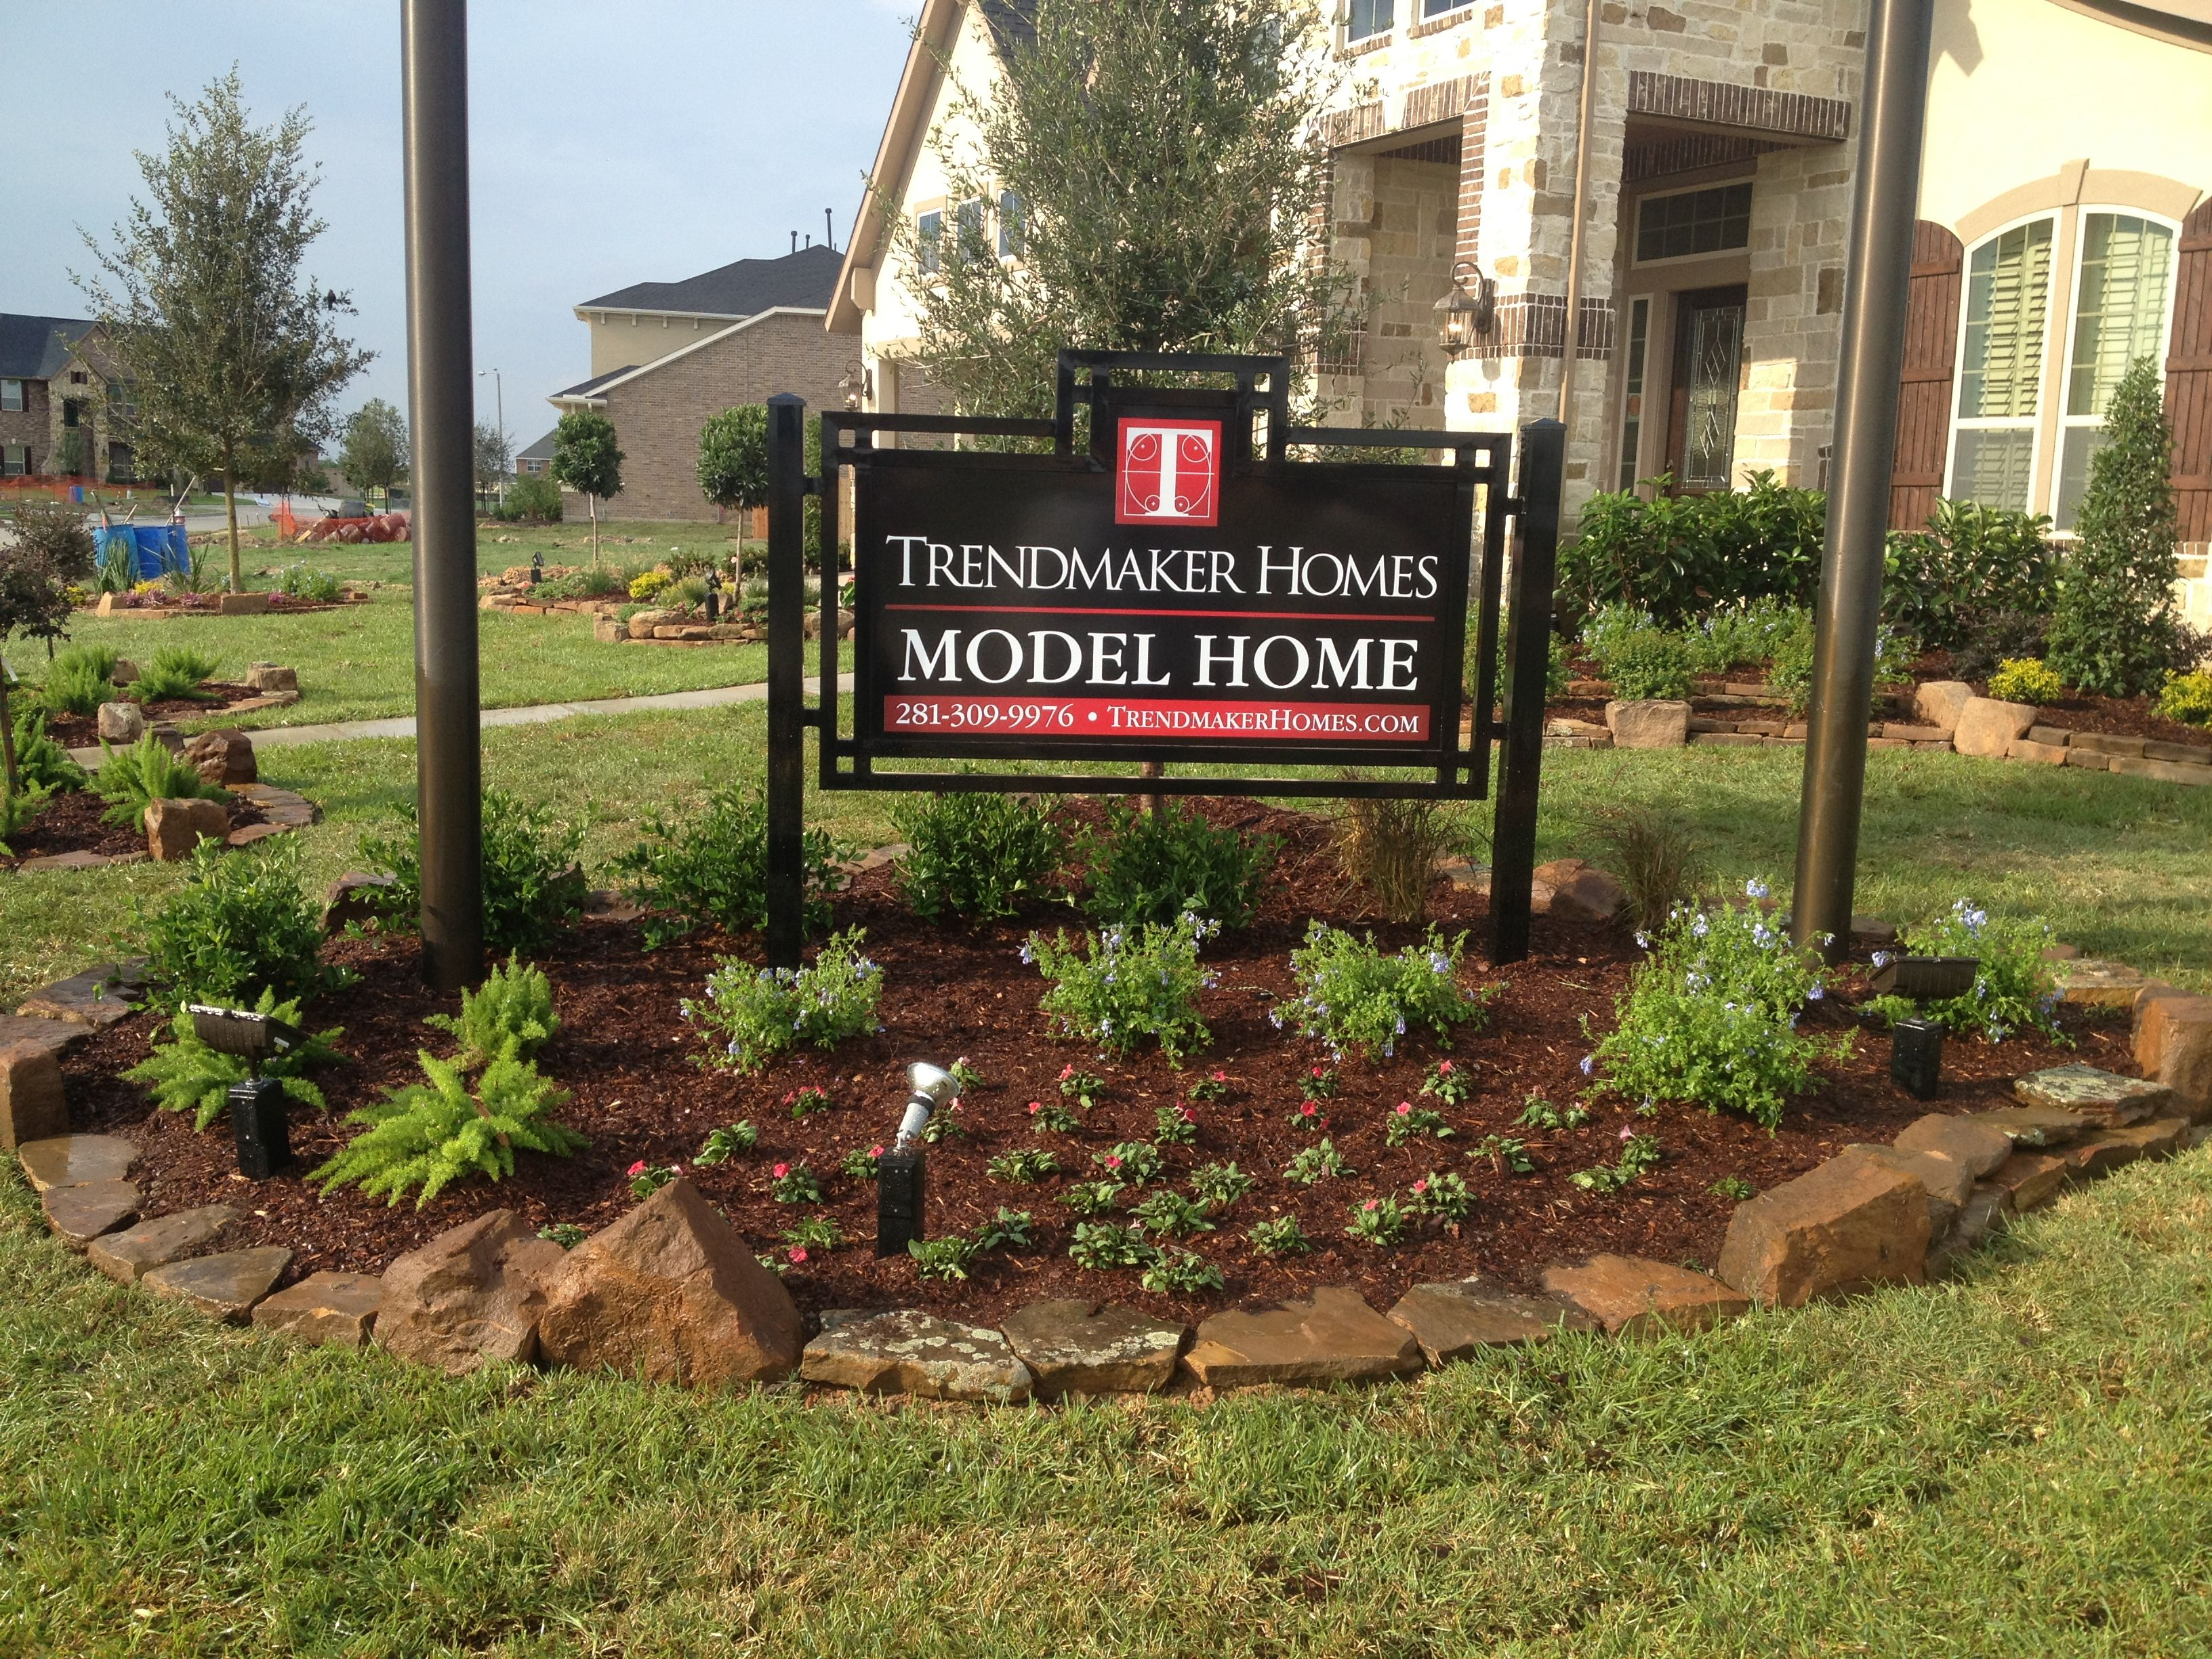 trendmaker model home sign my work pinterest